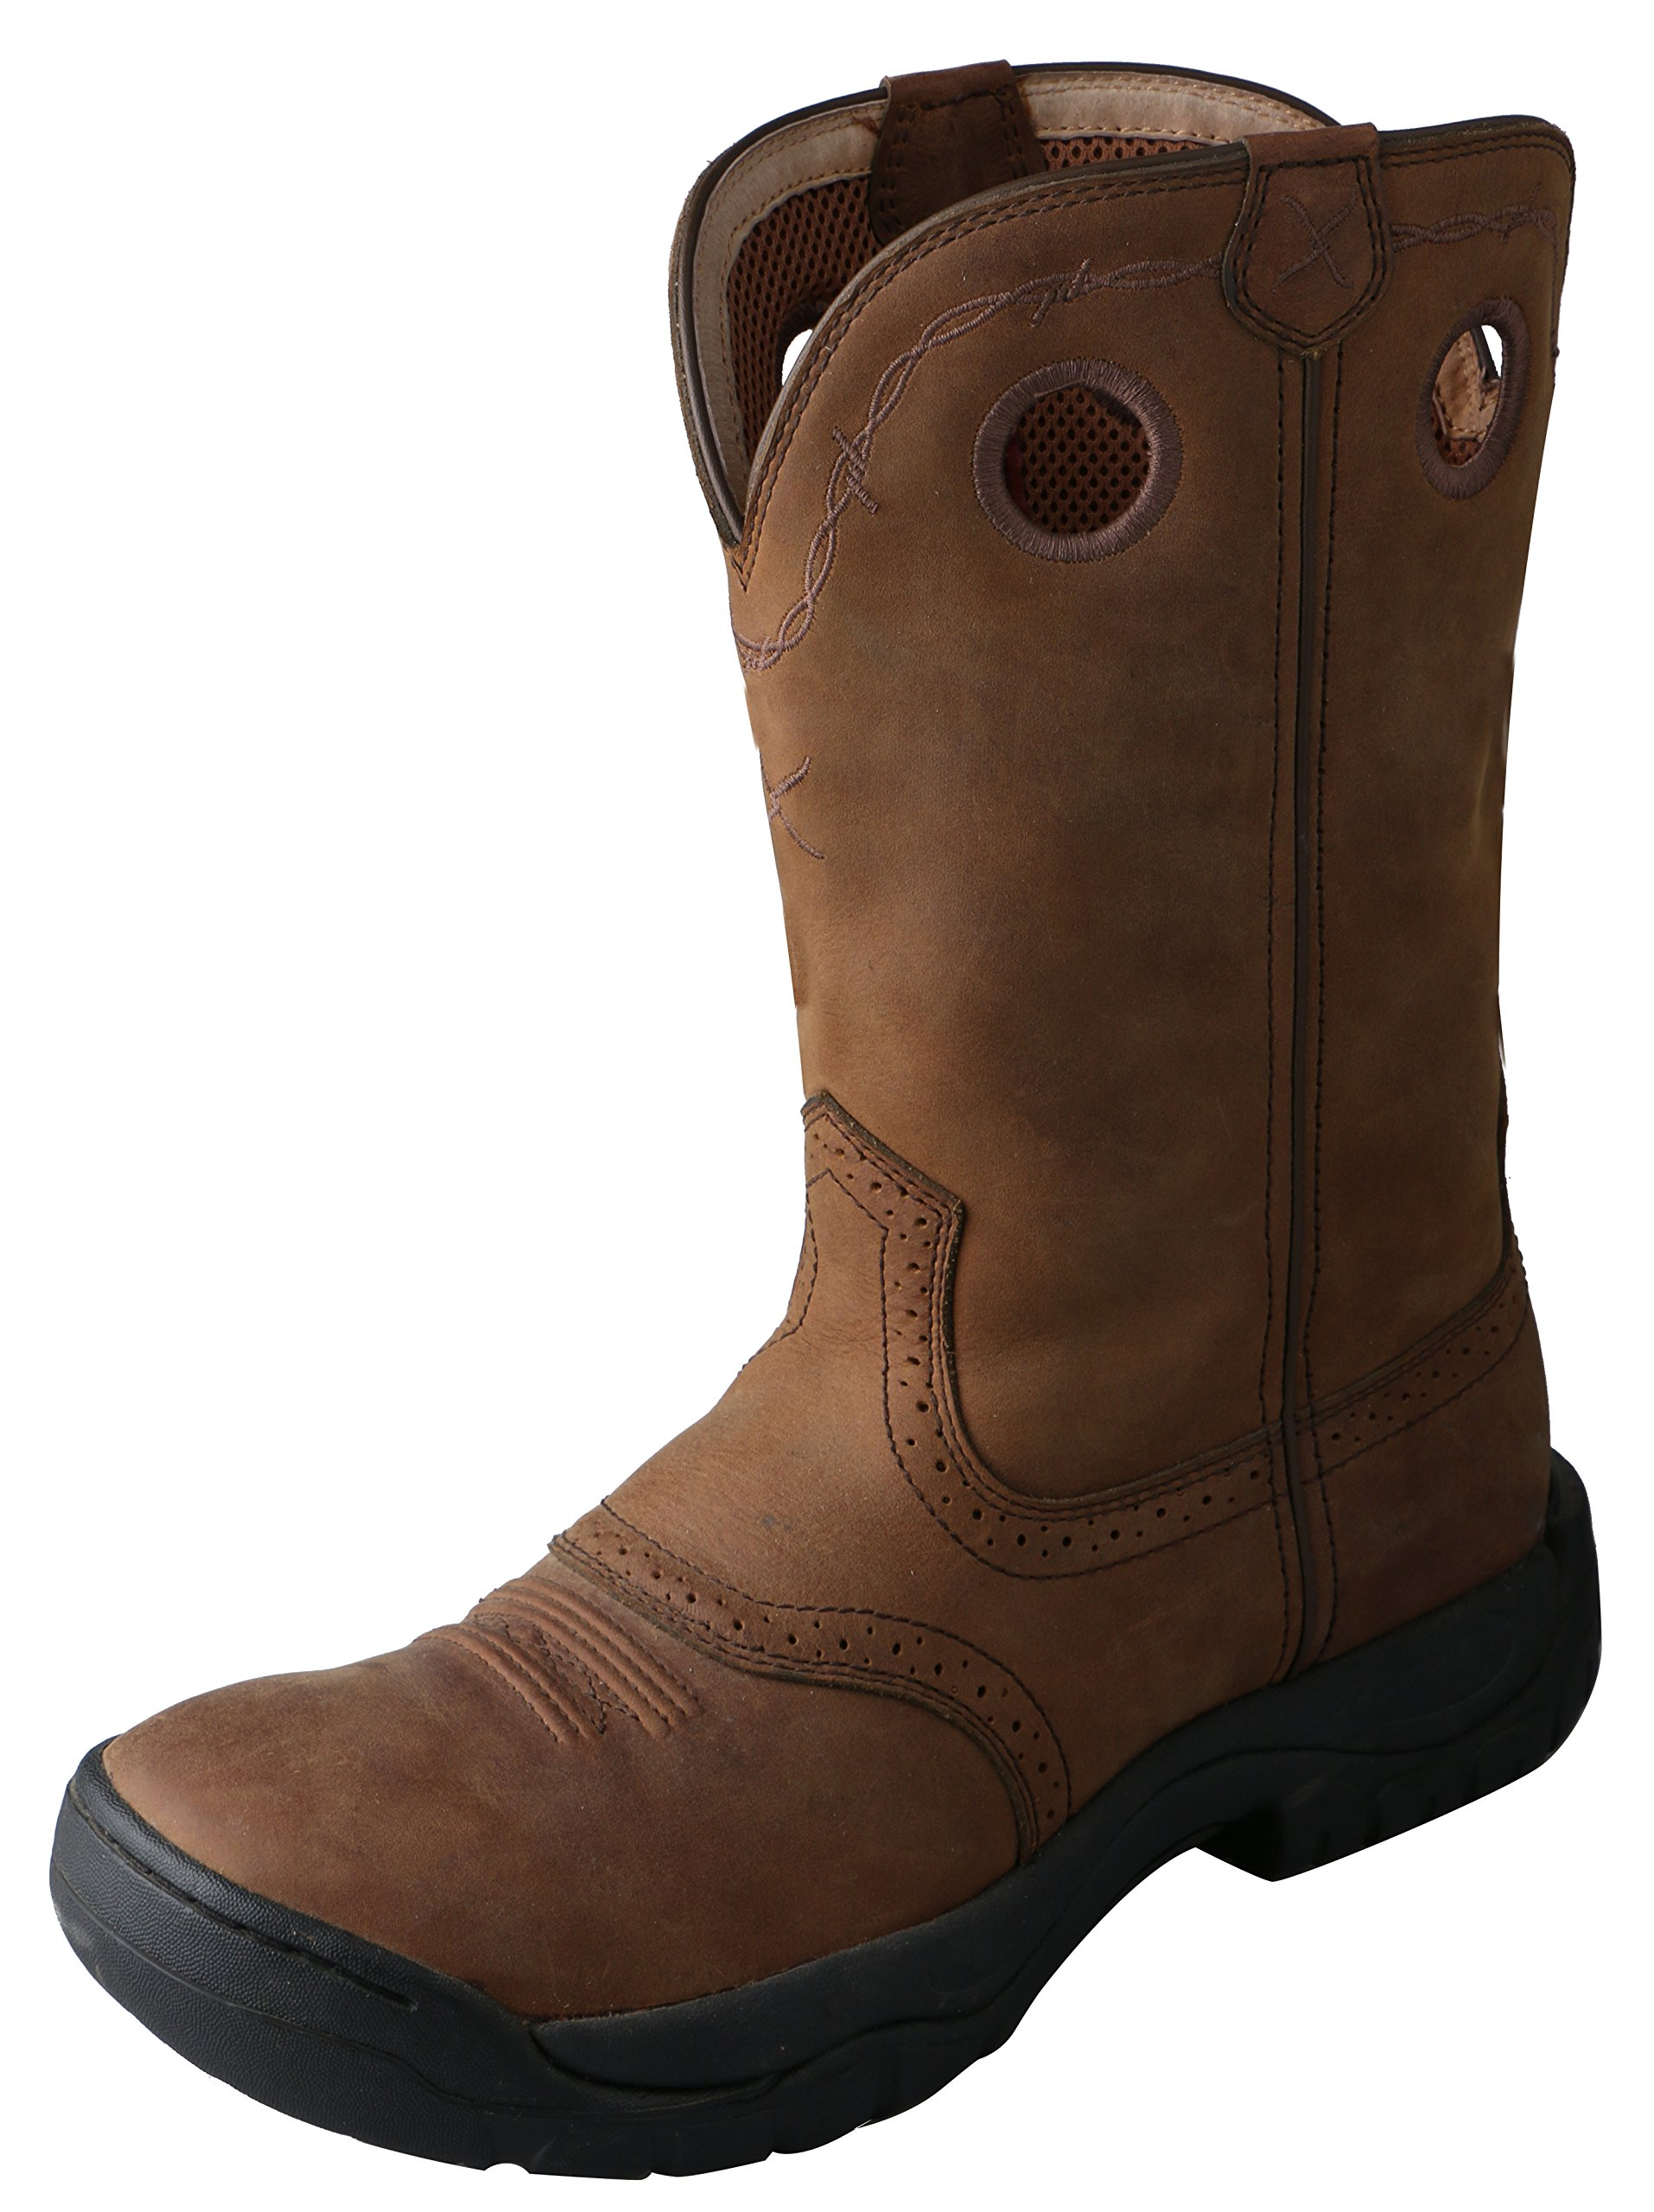 Twisted X Men's All Around Boot Distressed Saddle by Twisted X (Image #1)